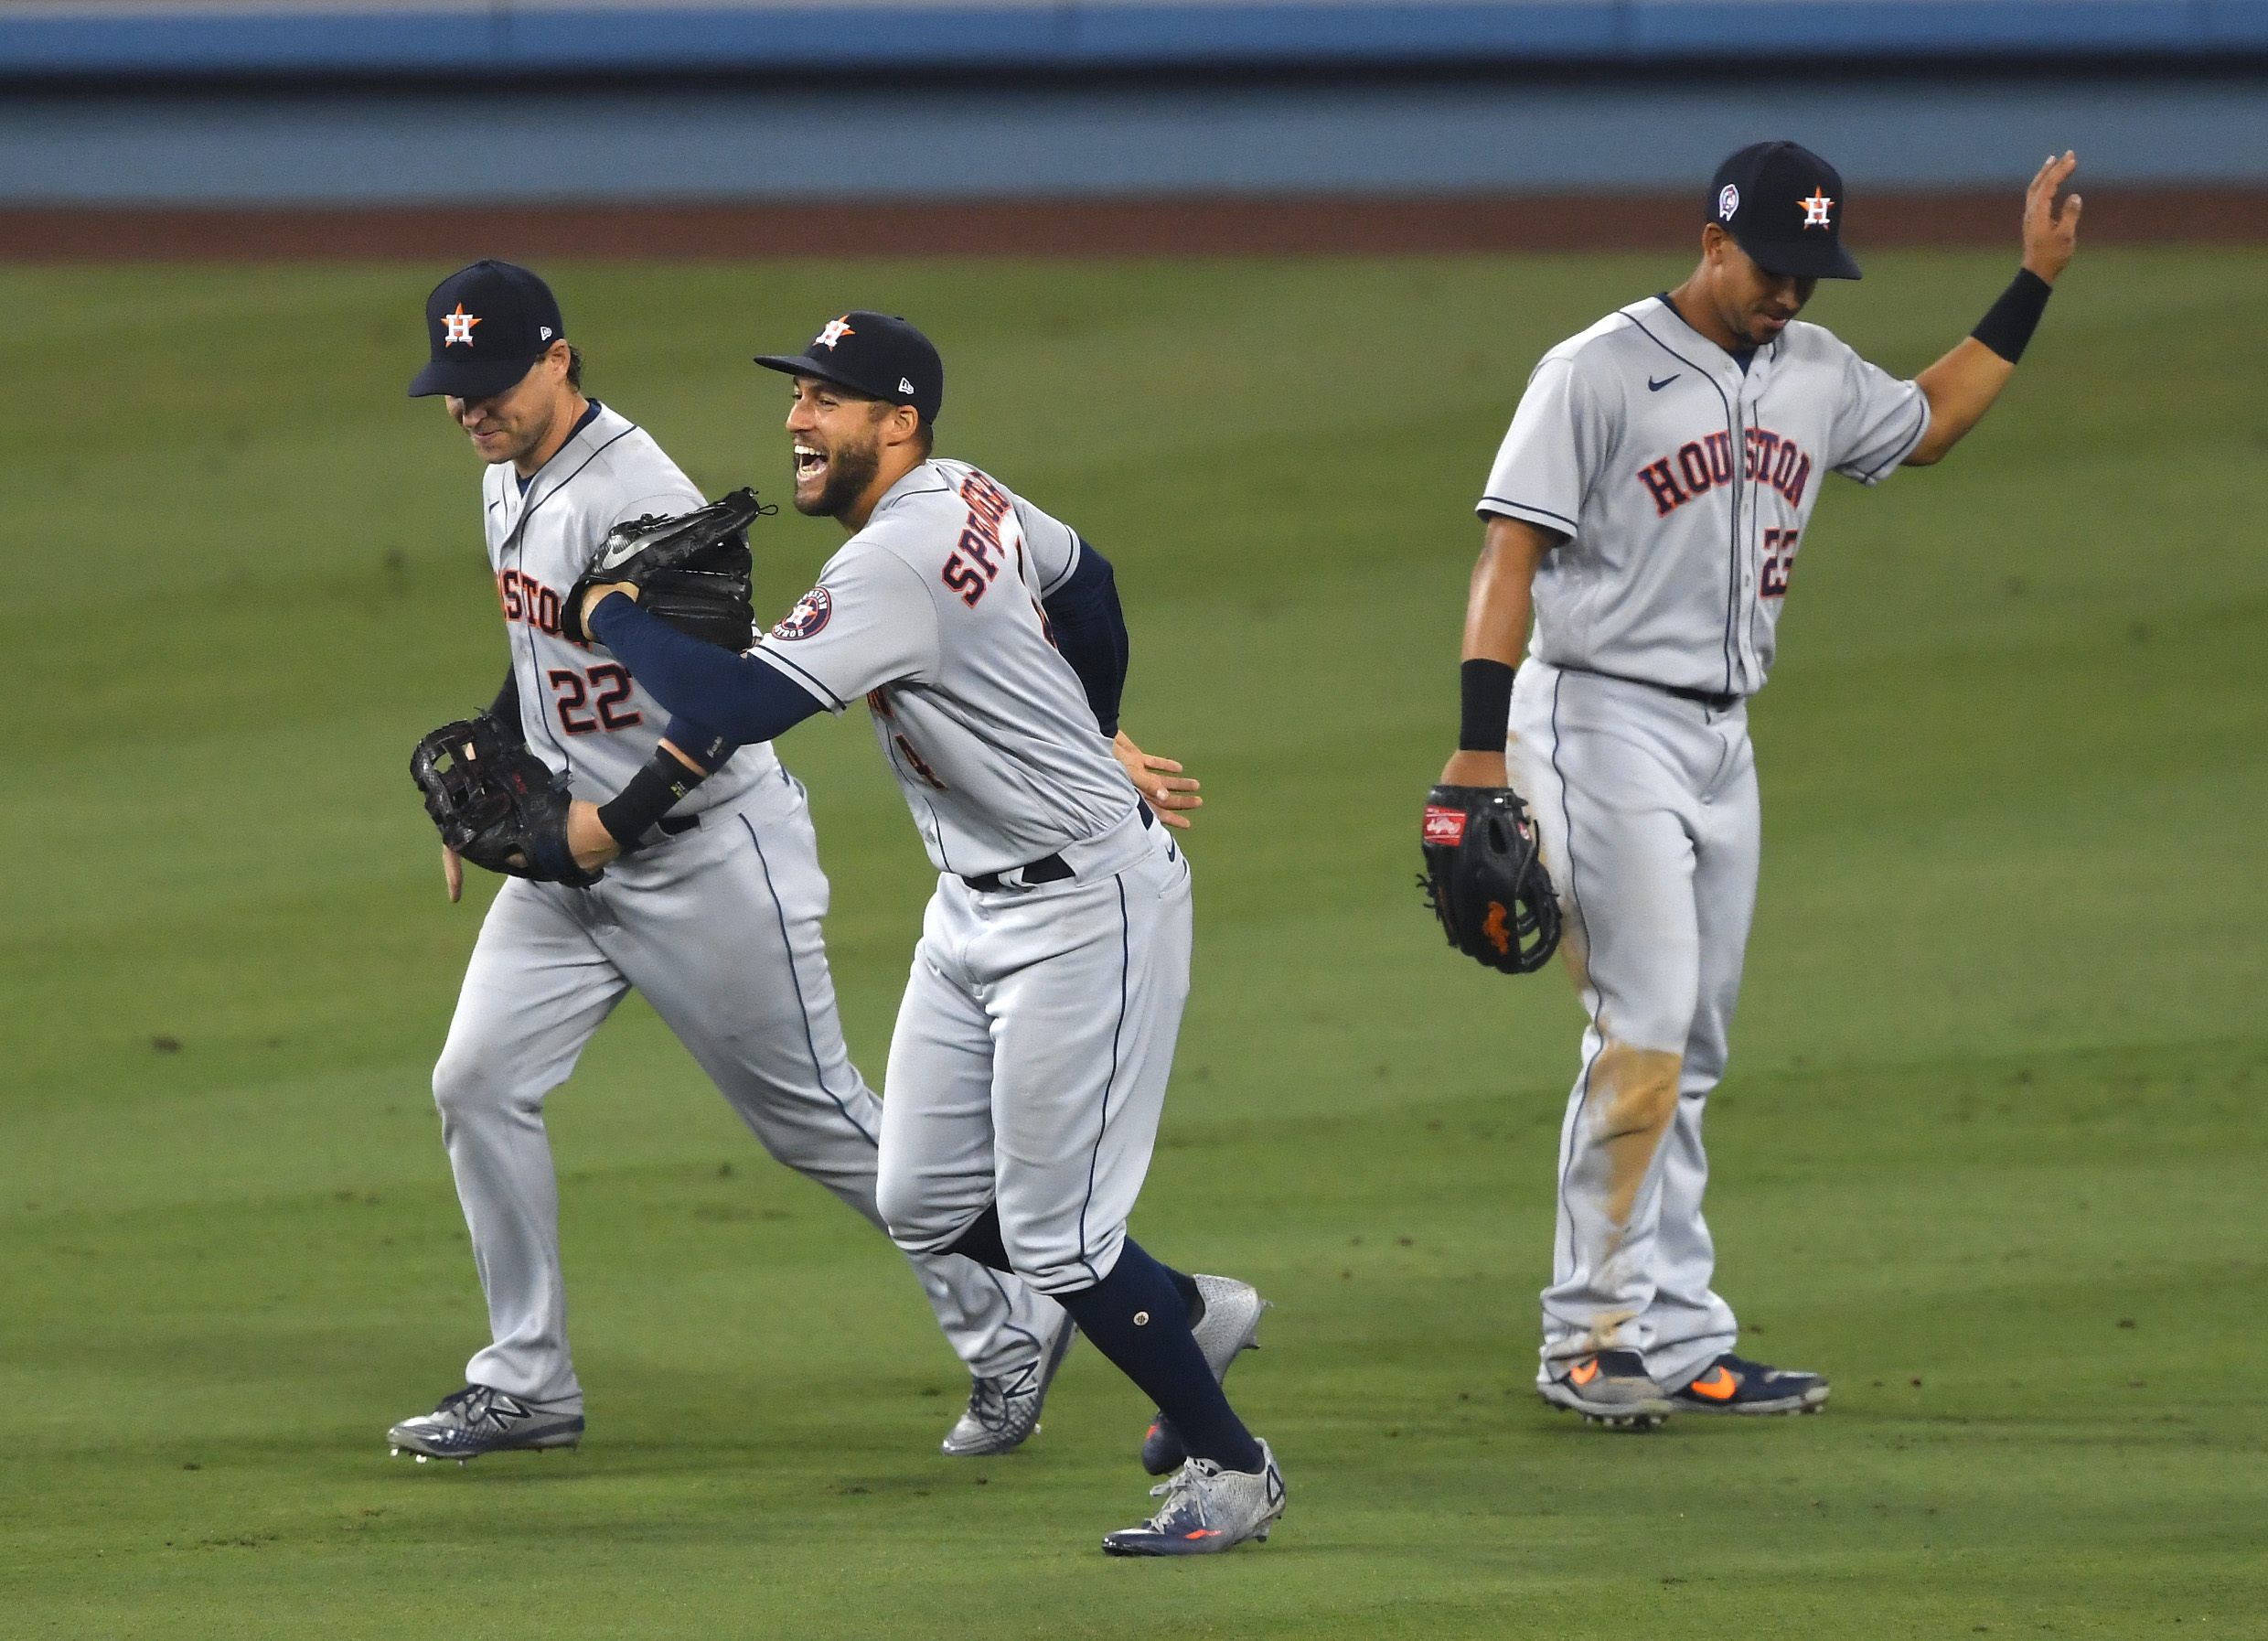 mlb games to bet on today